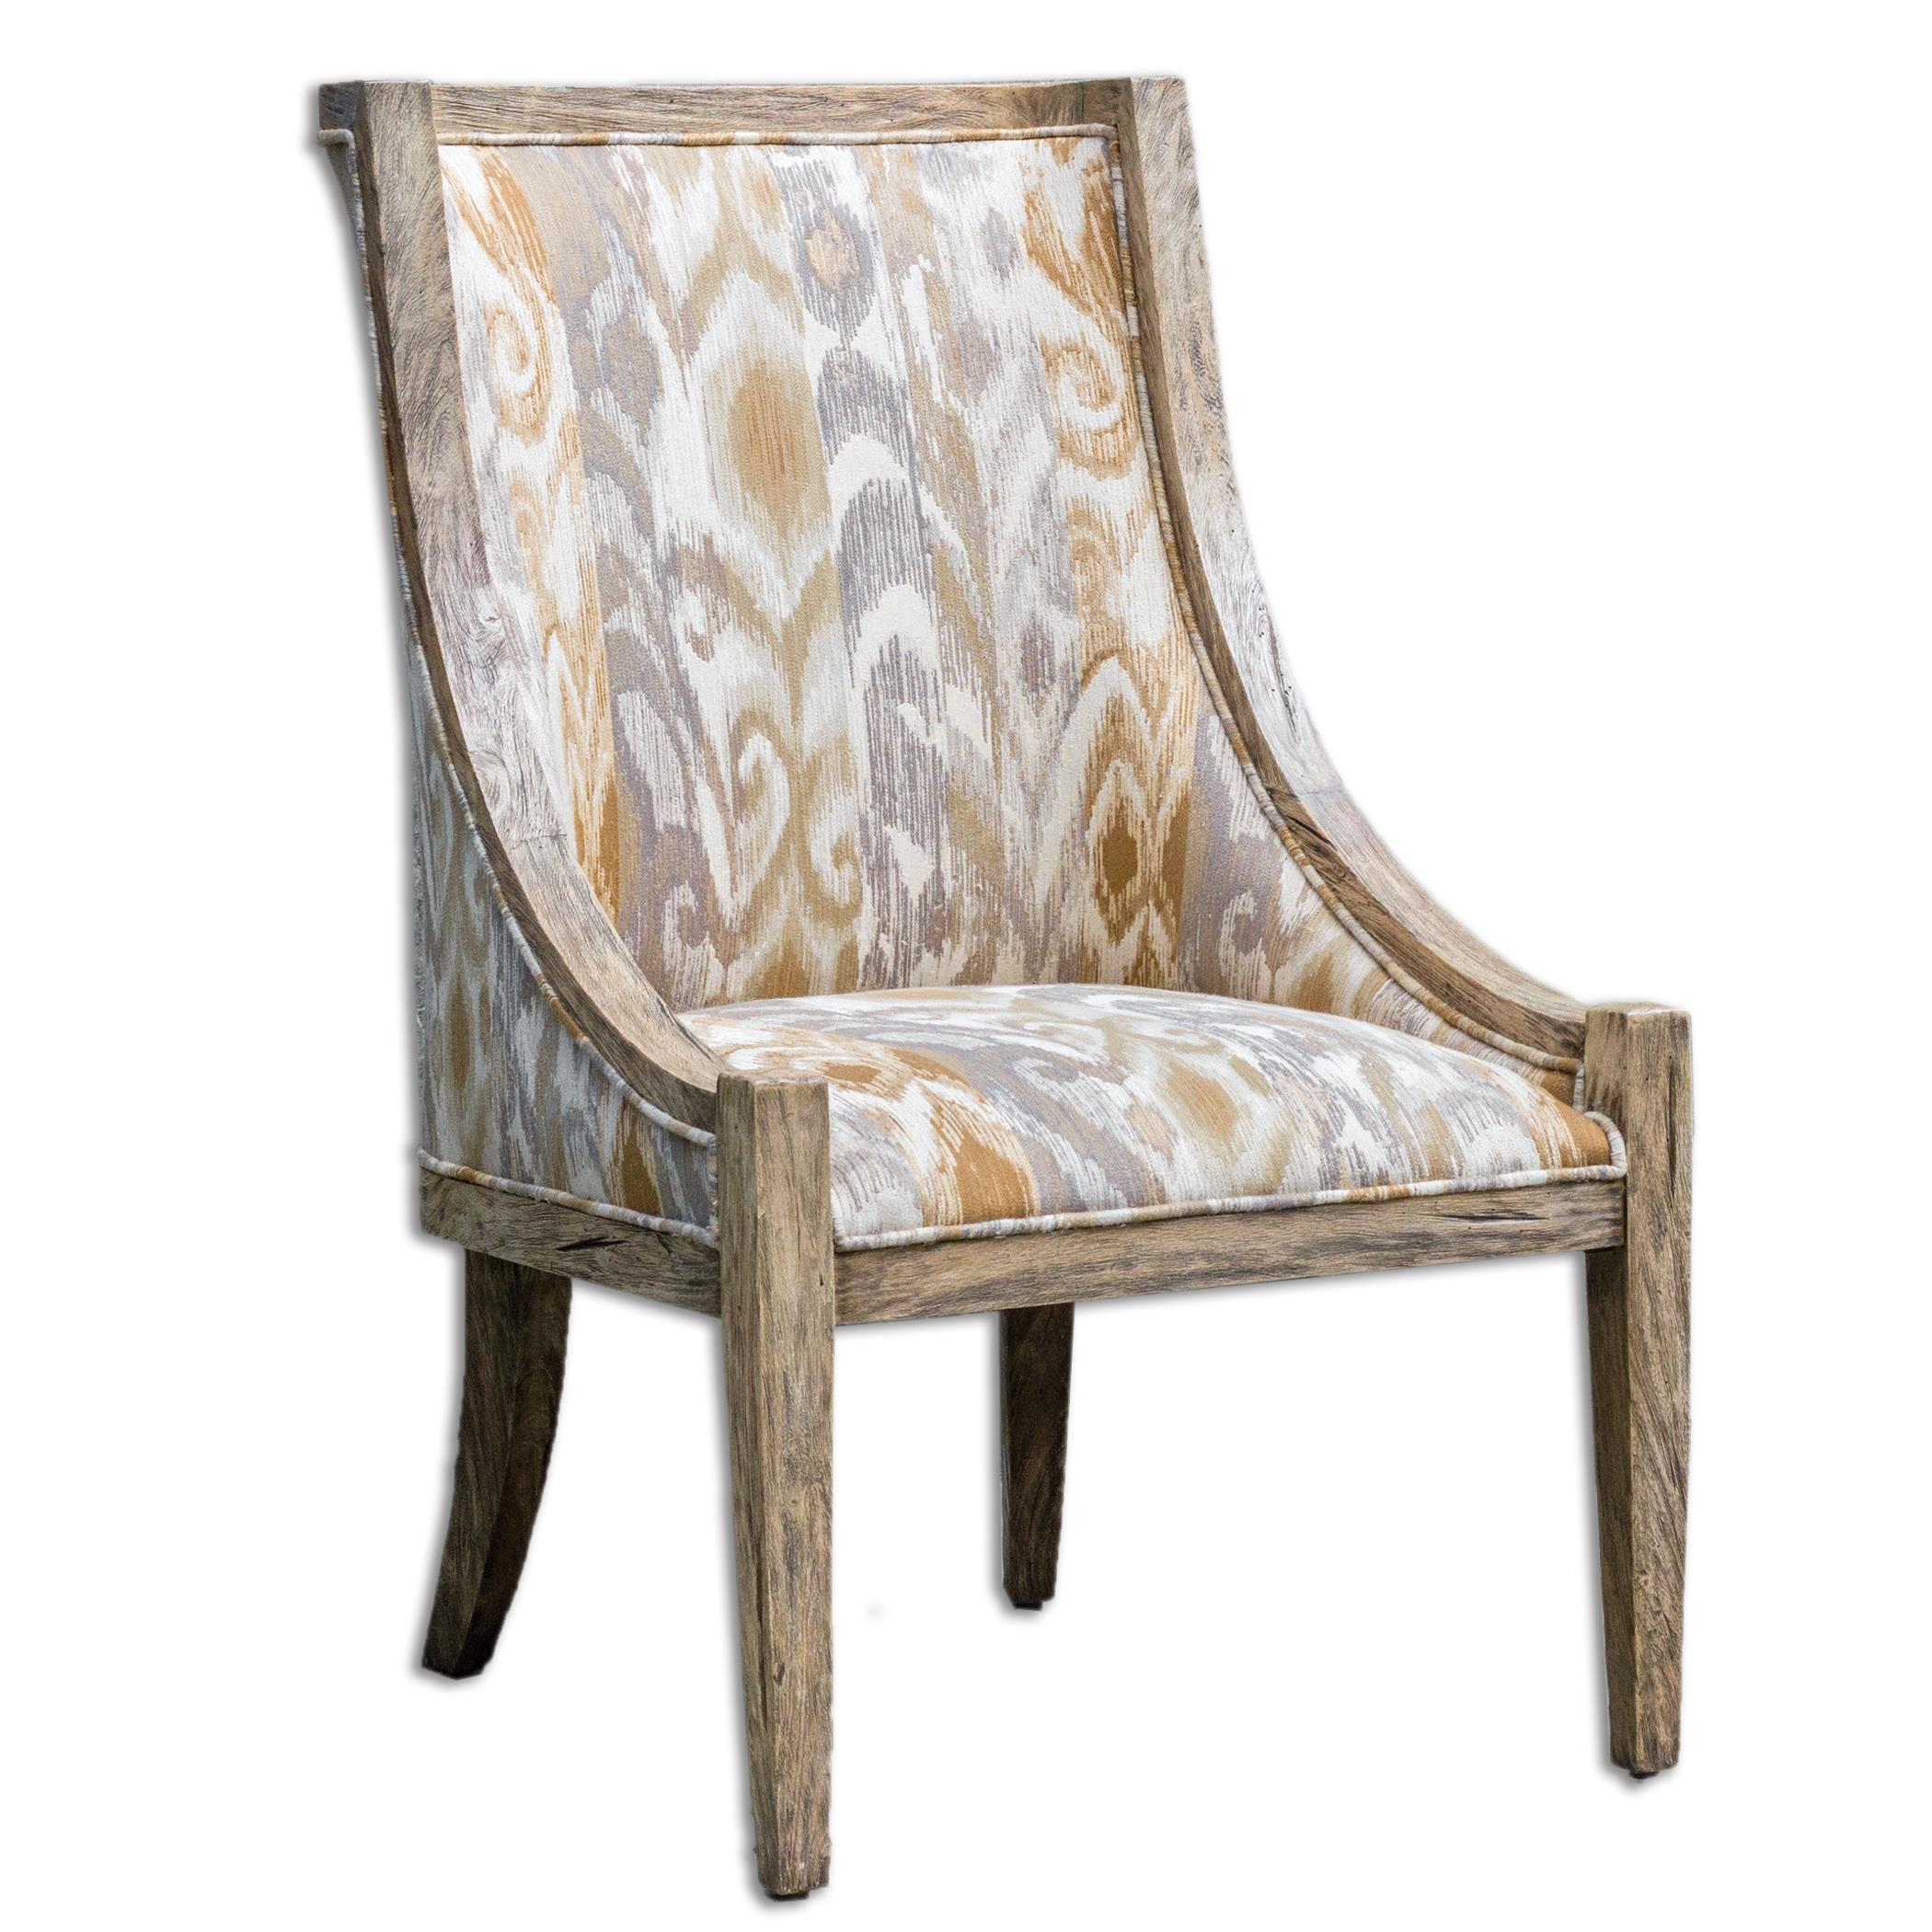 Uttermost Accent Furniture Alabaster Driftwood Accent Chair - Item Number: 23634